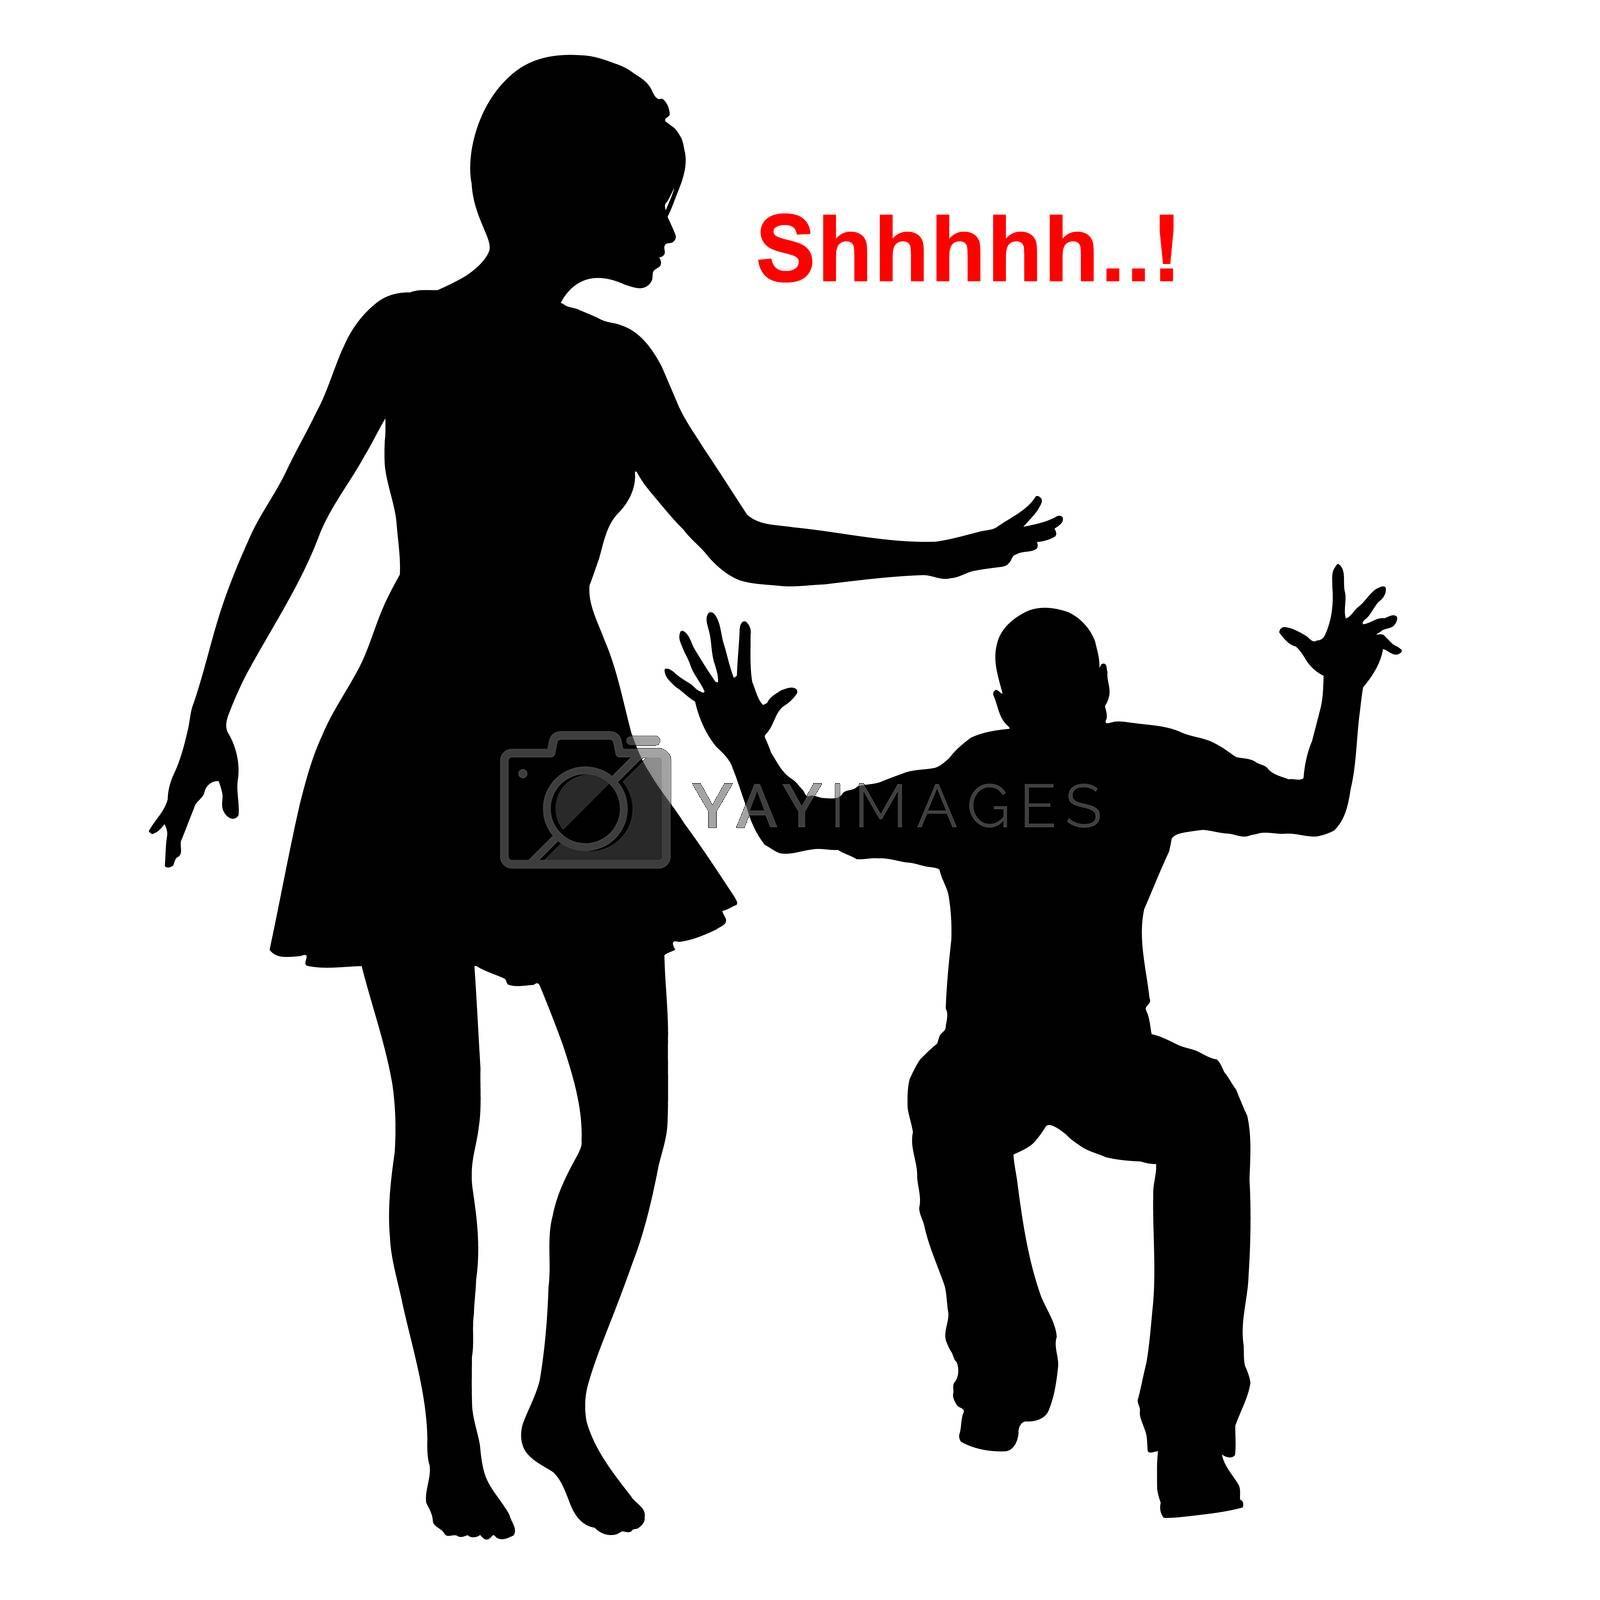 The man reacts aggressive and choleric, while the woman keeps calm and quietly